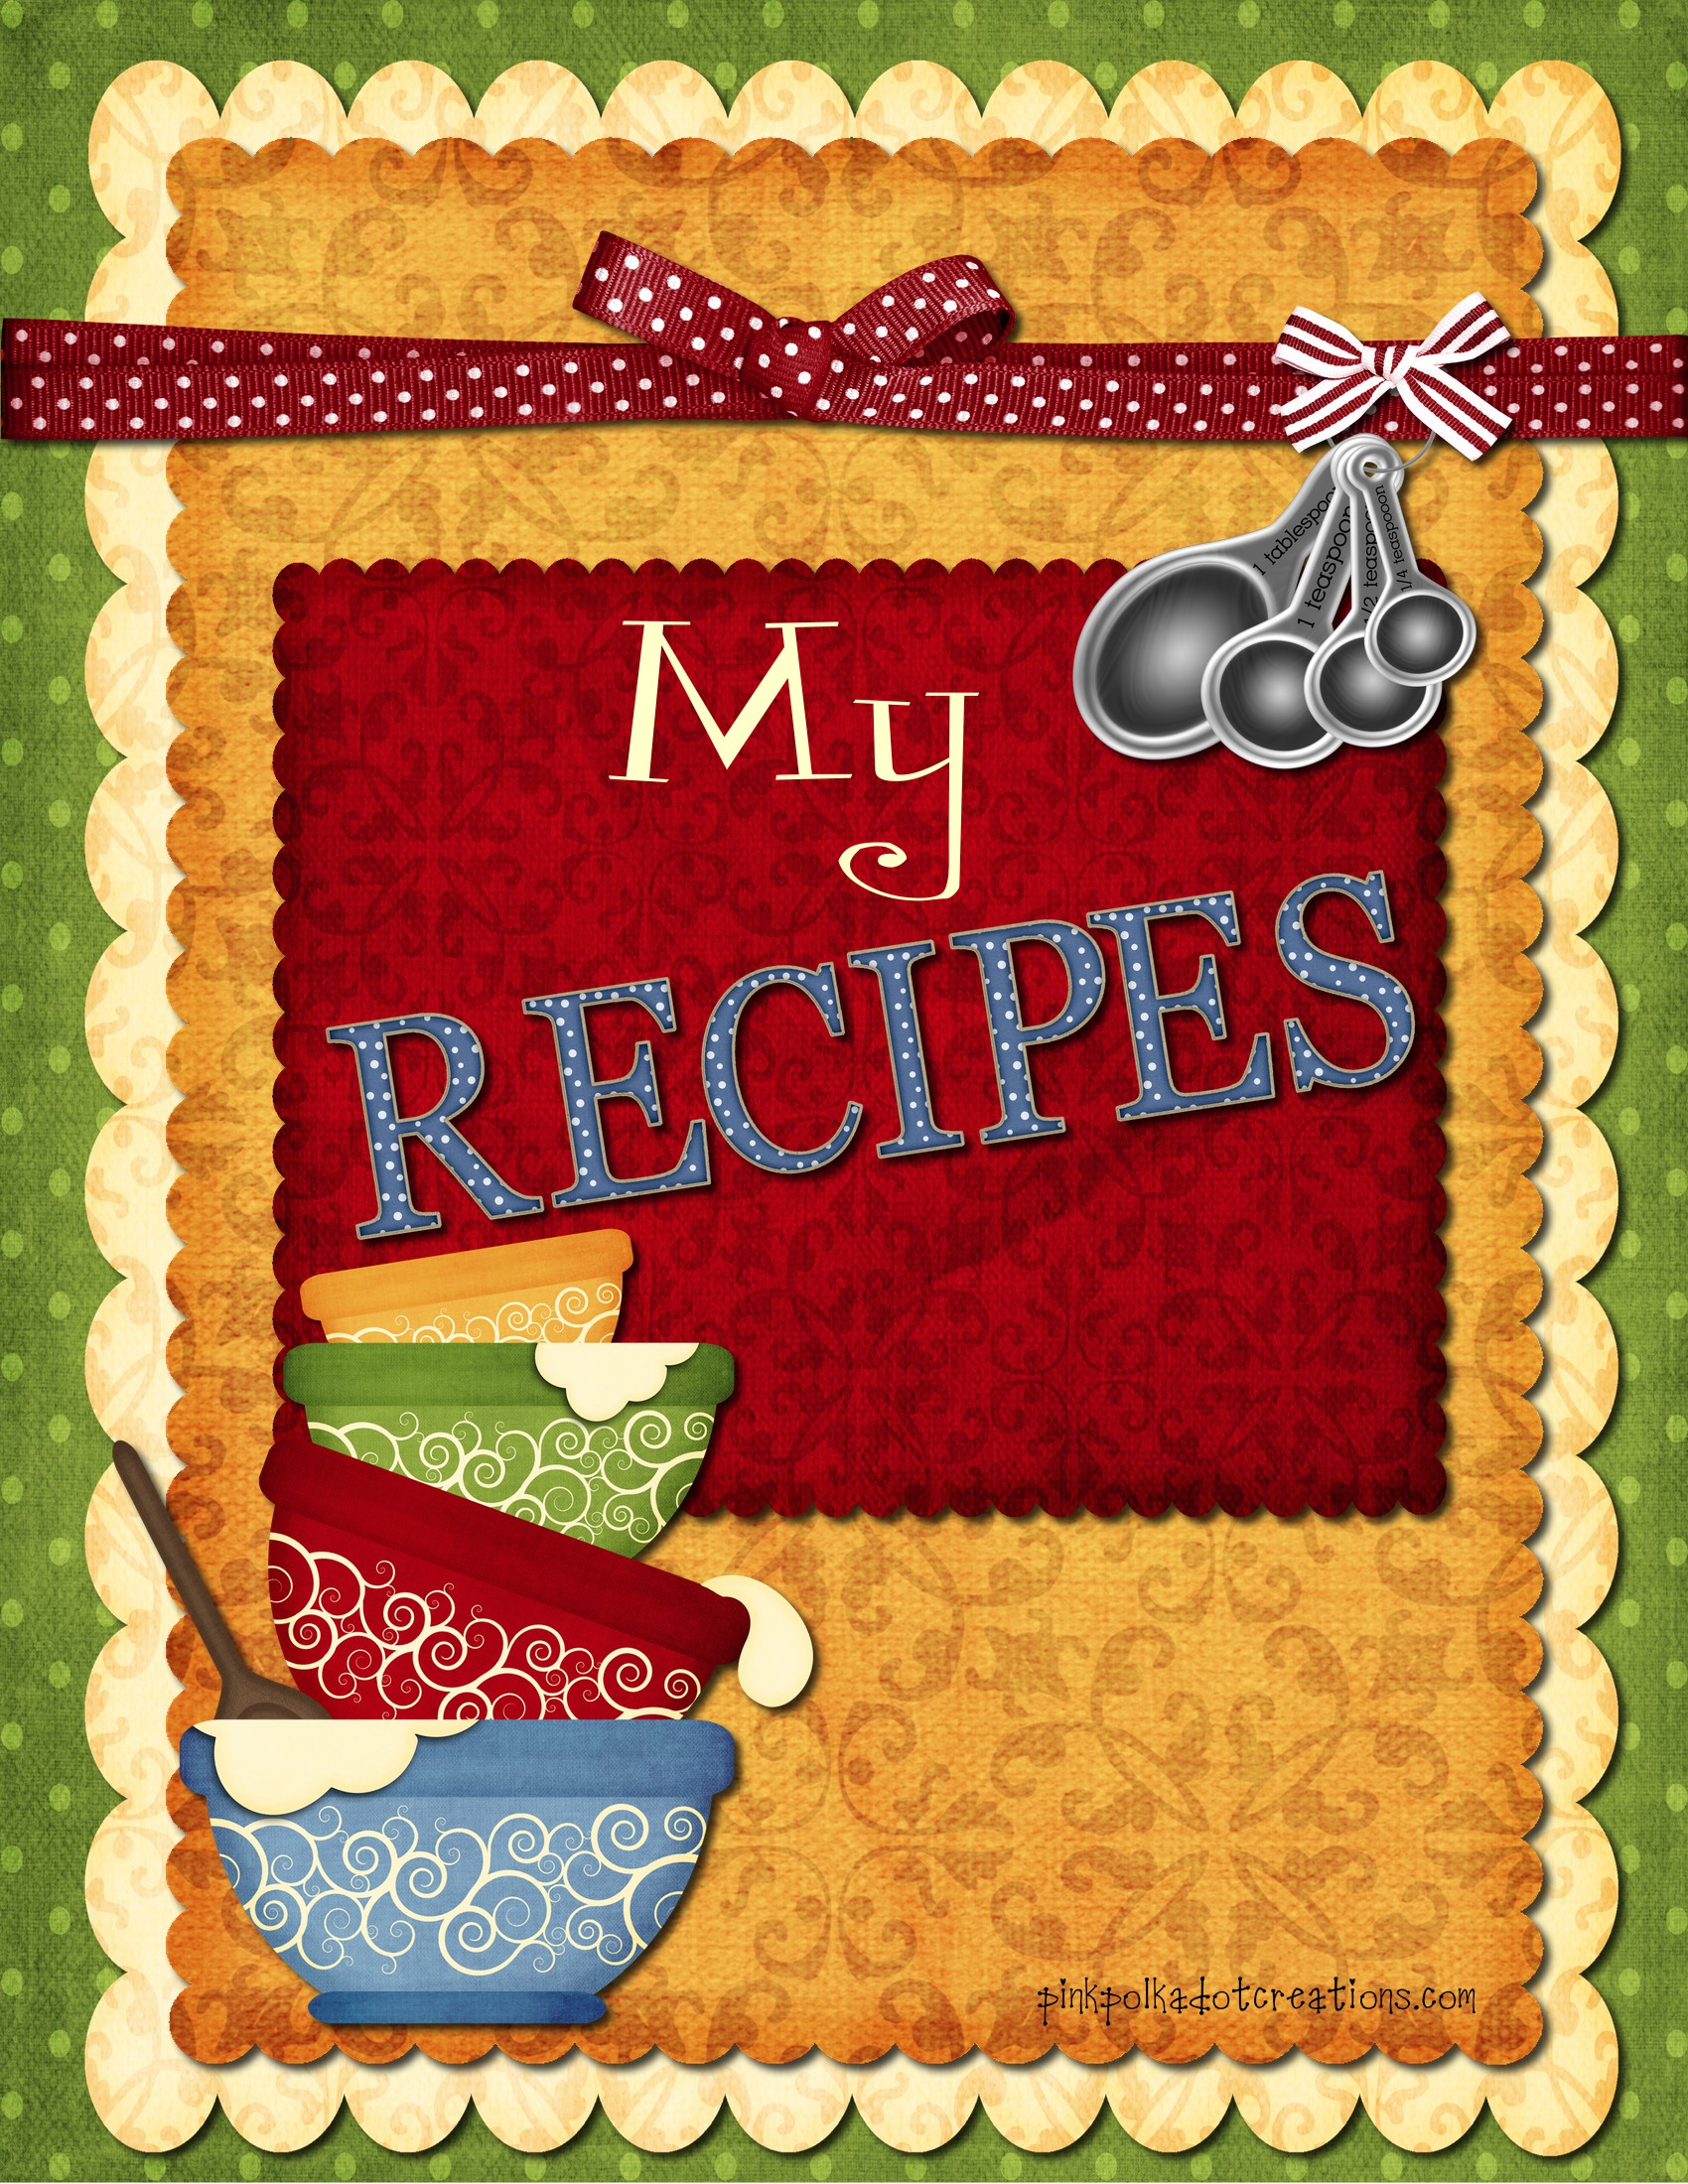 My Cookbook Cover : Recipe book dividers pink polka dot creations